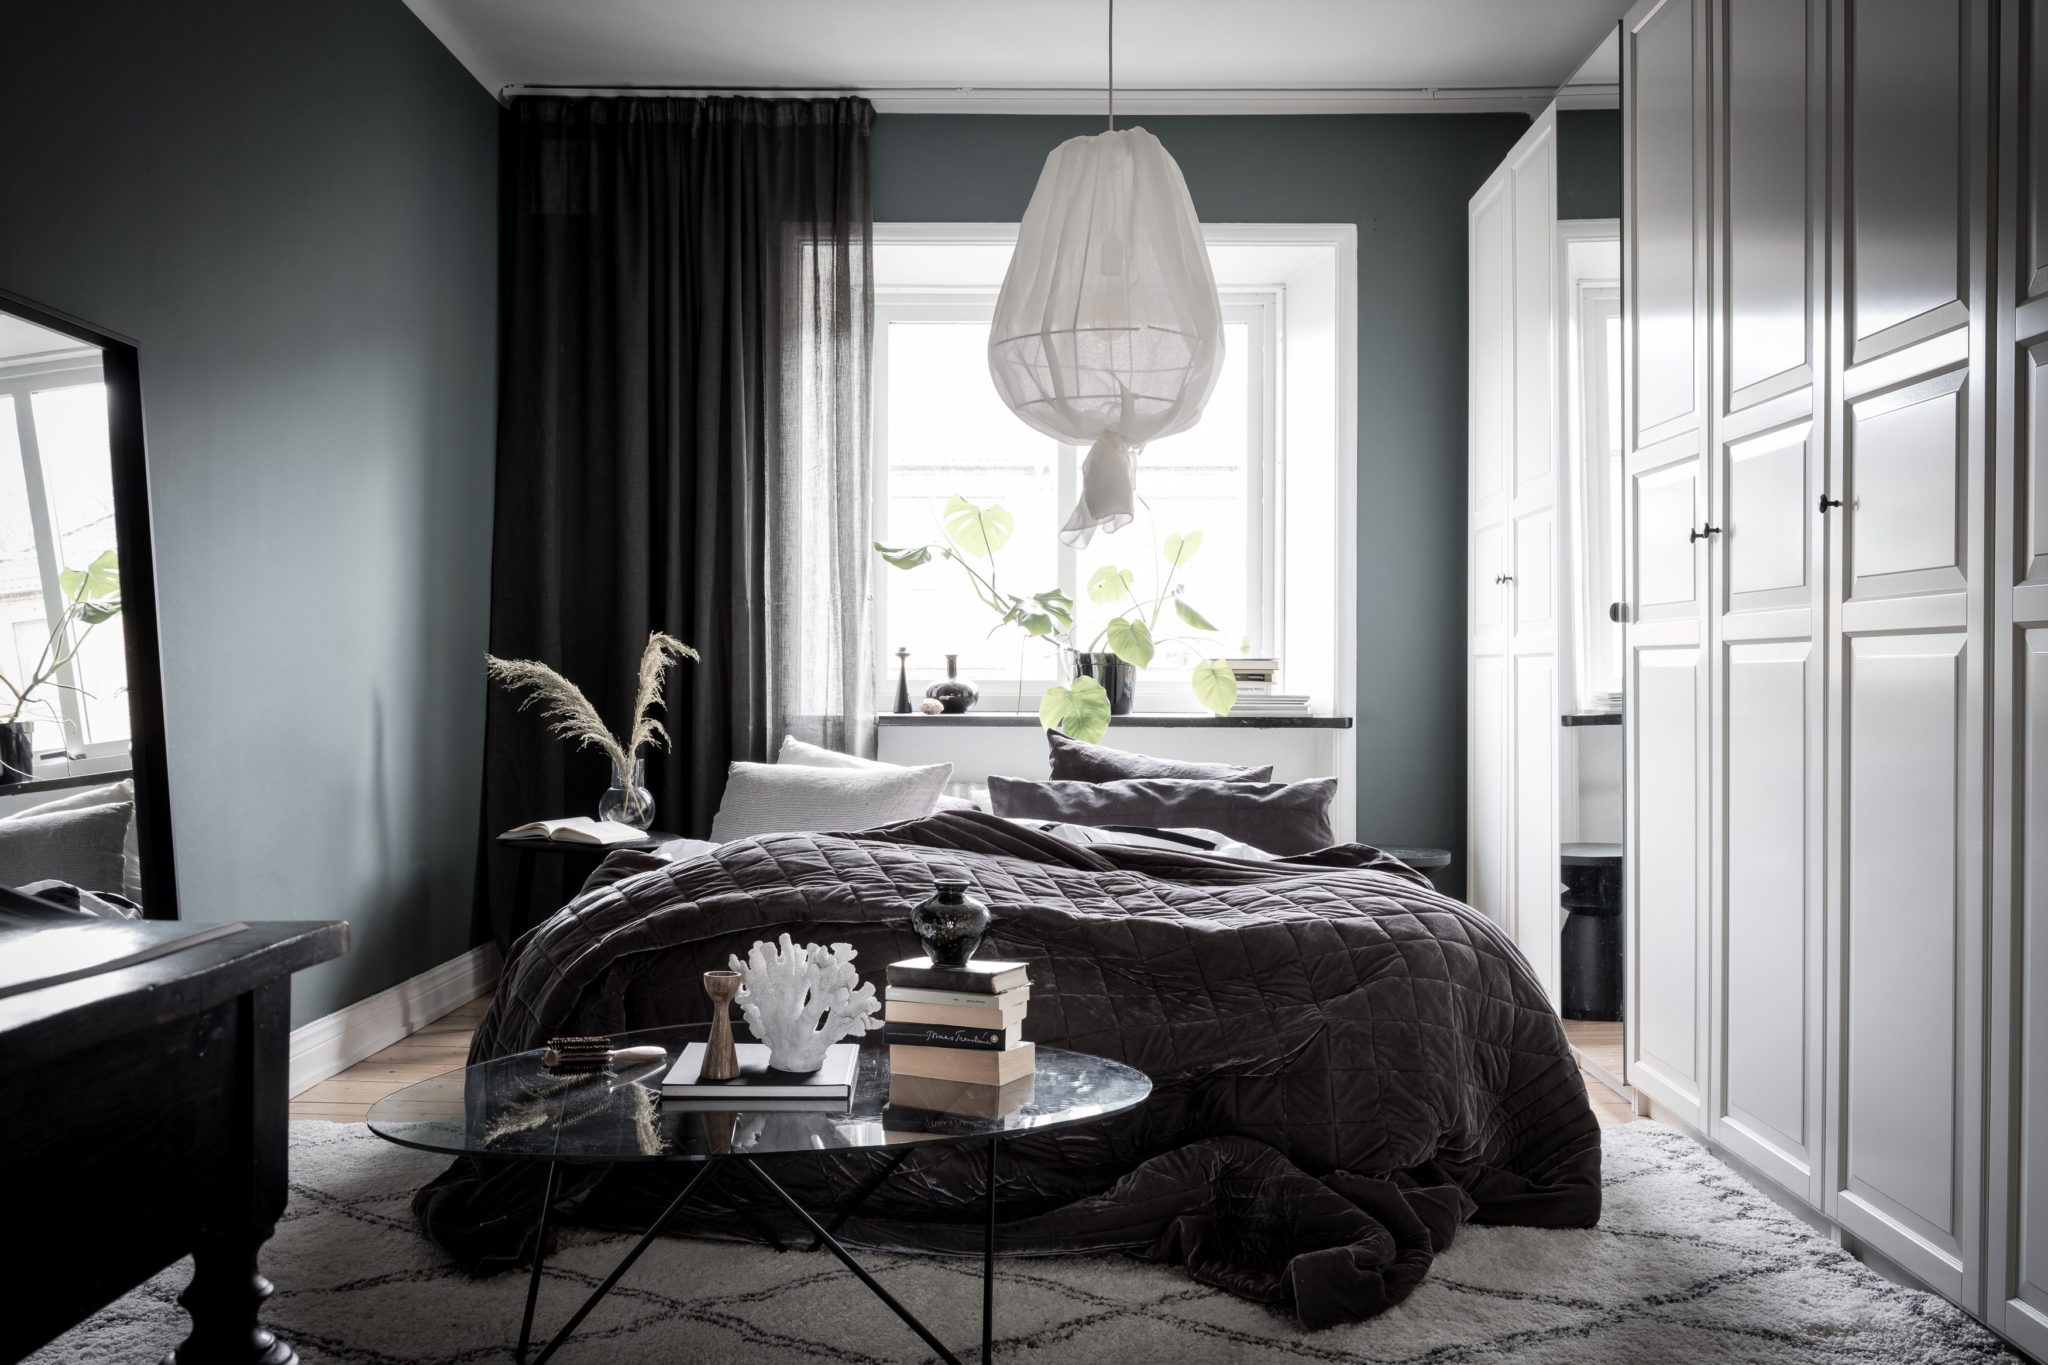 Warning: These 11 Cozy Bedroom Ideas Will Make You Want to Sleep In